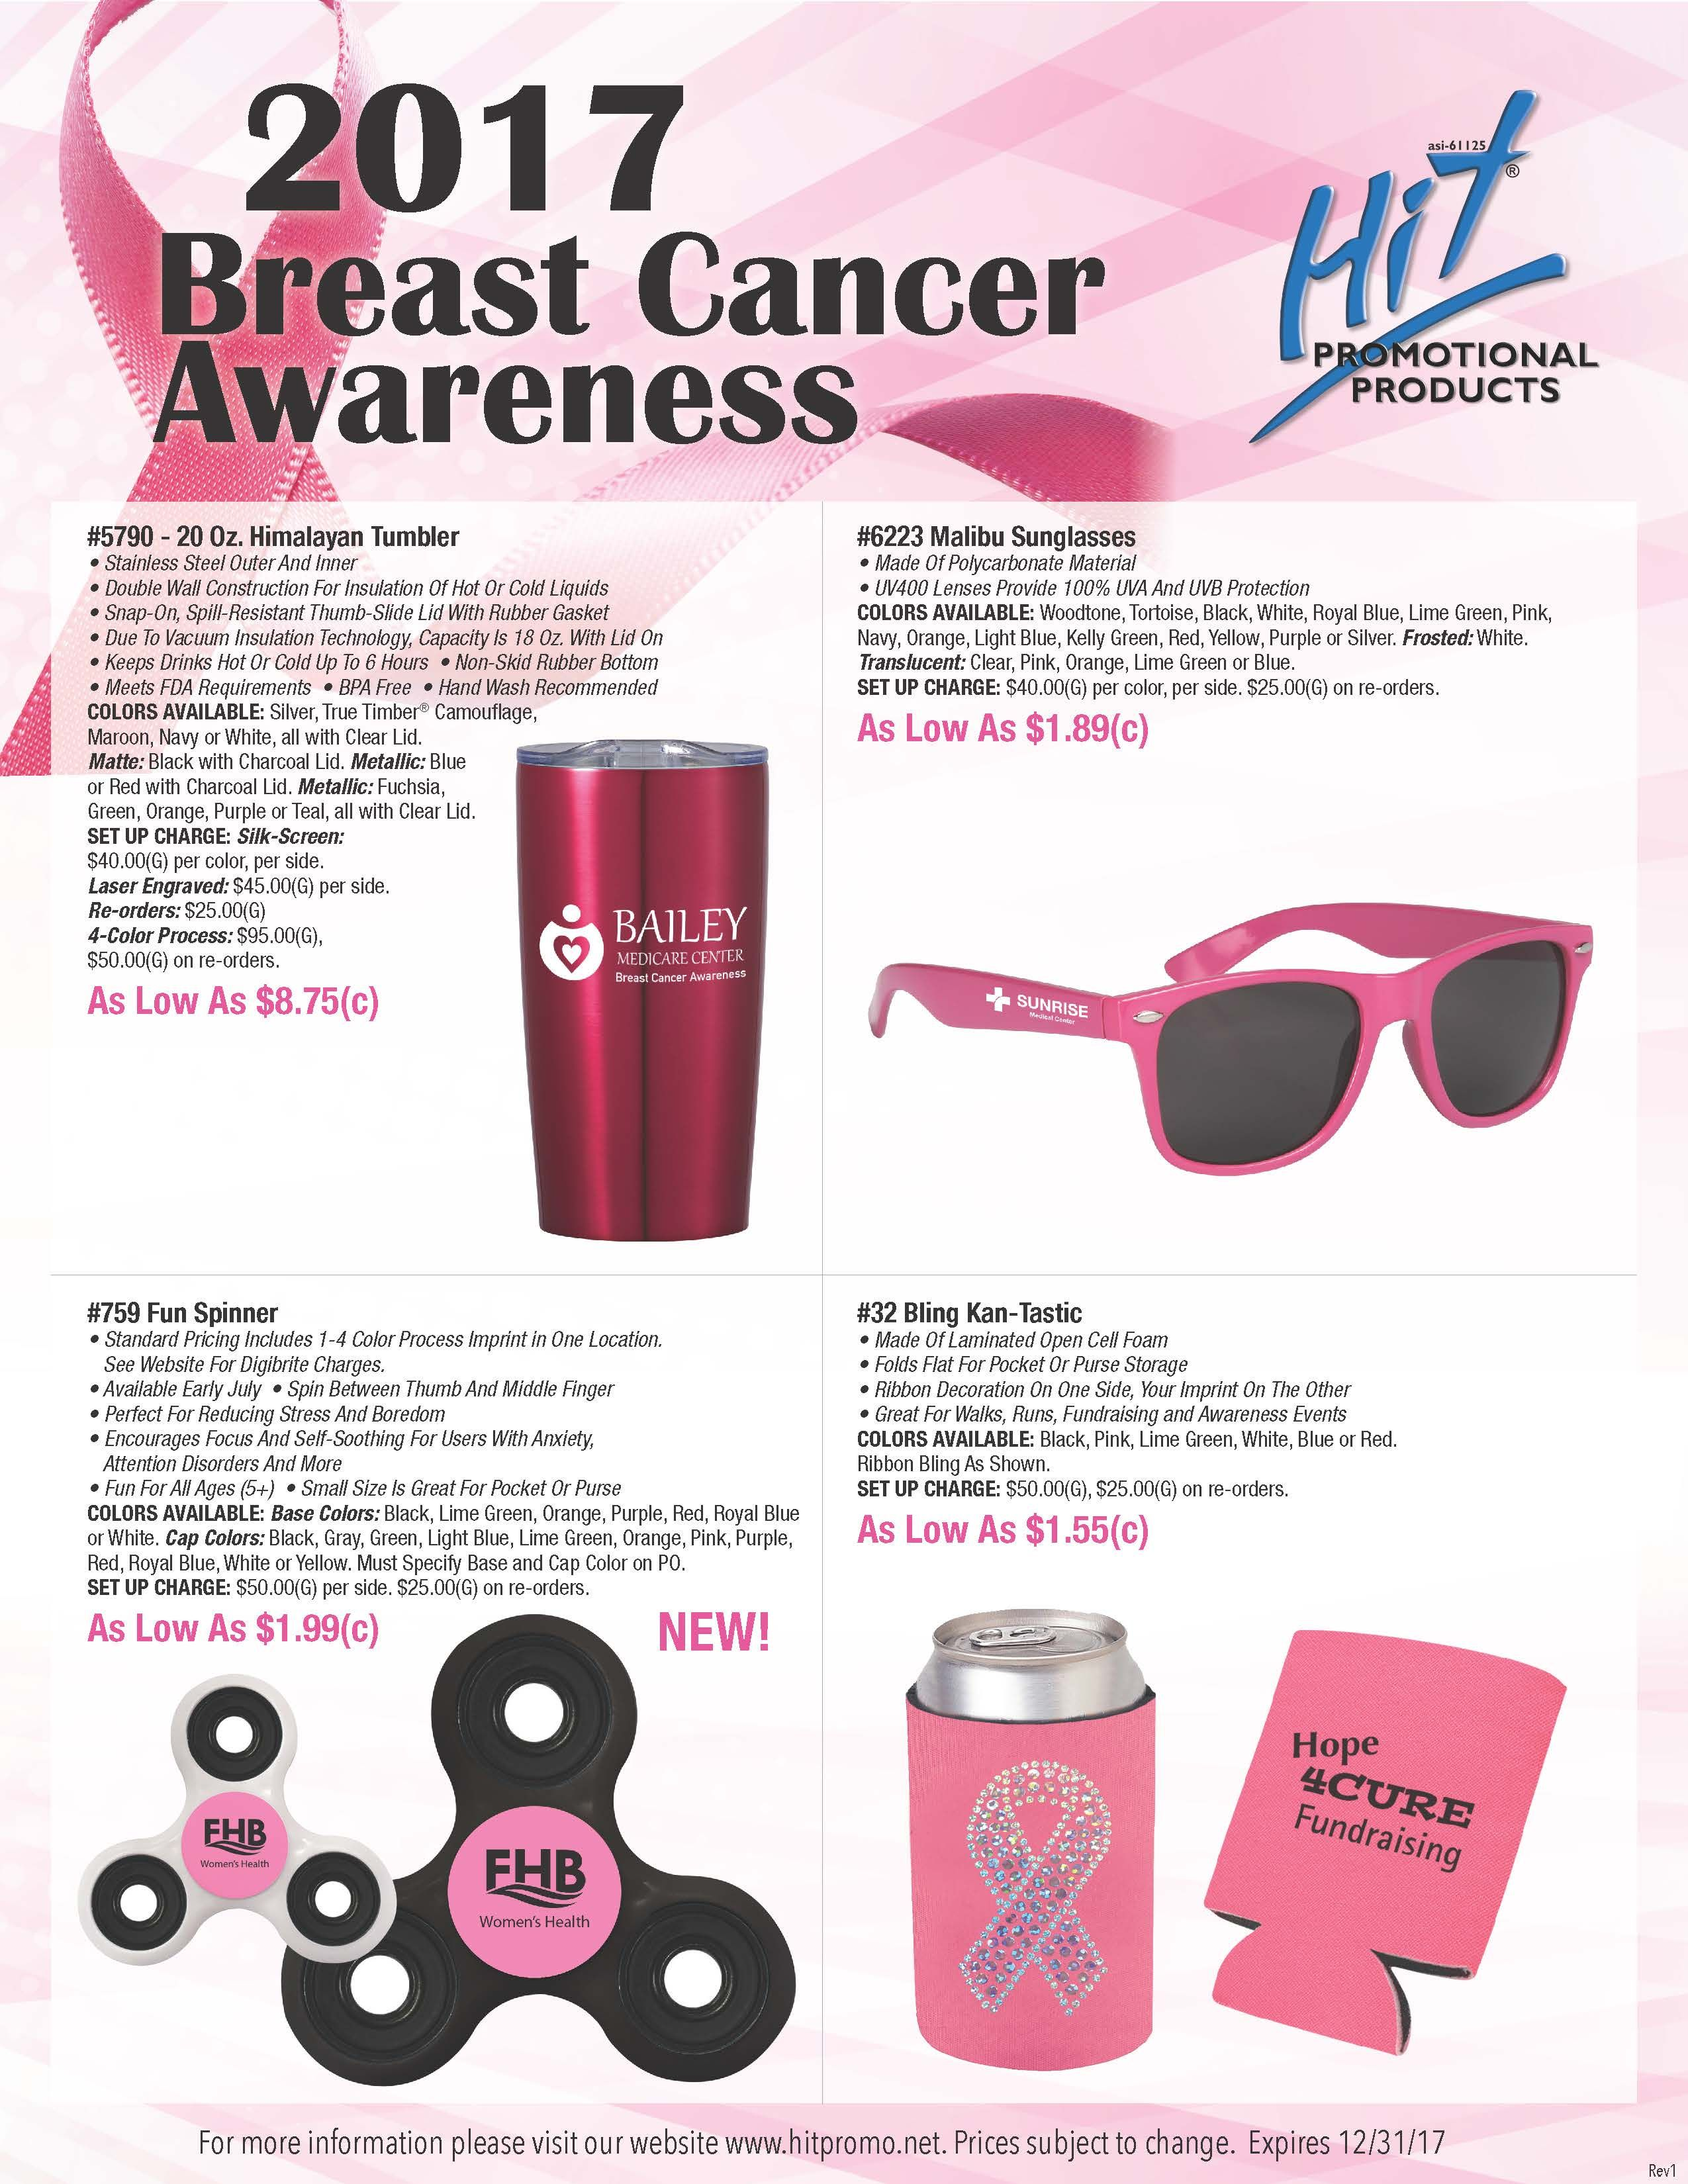 d9cf723d9f44e Start thinking pink! October is Breast Cancer Awareness Month. Show support    help raise awareness to the cause with primo promo ideas from Hit!